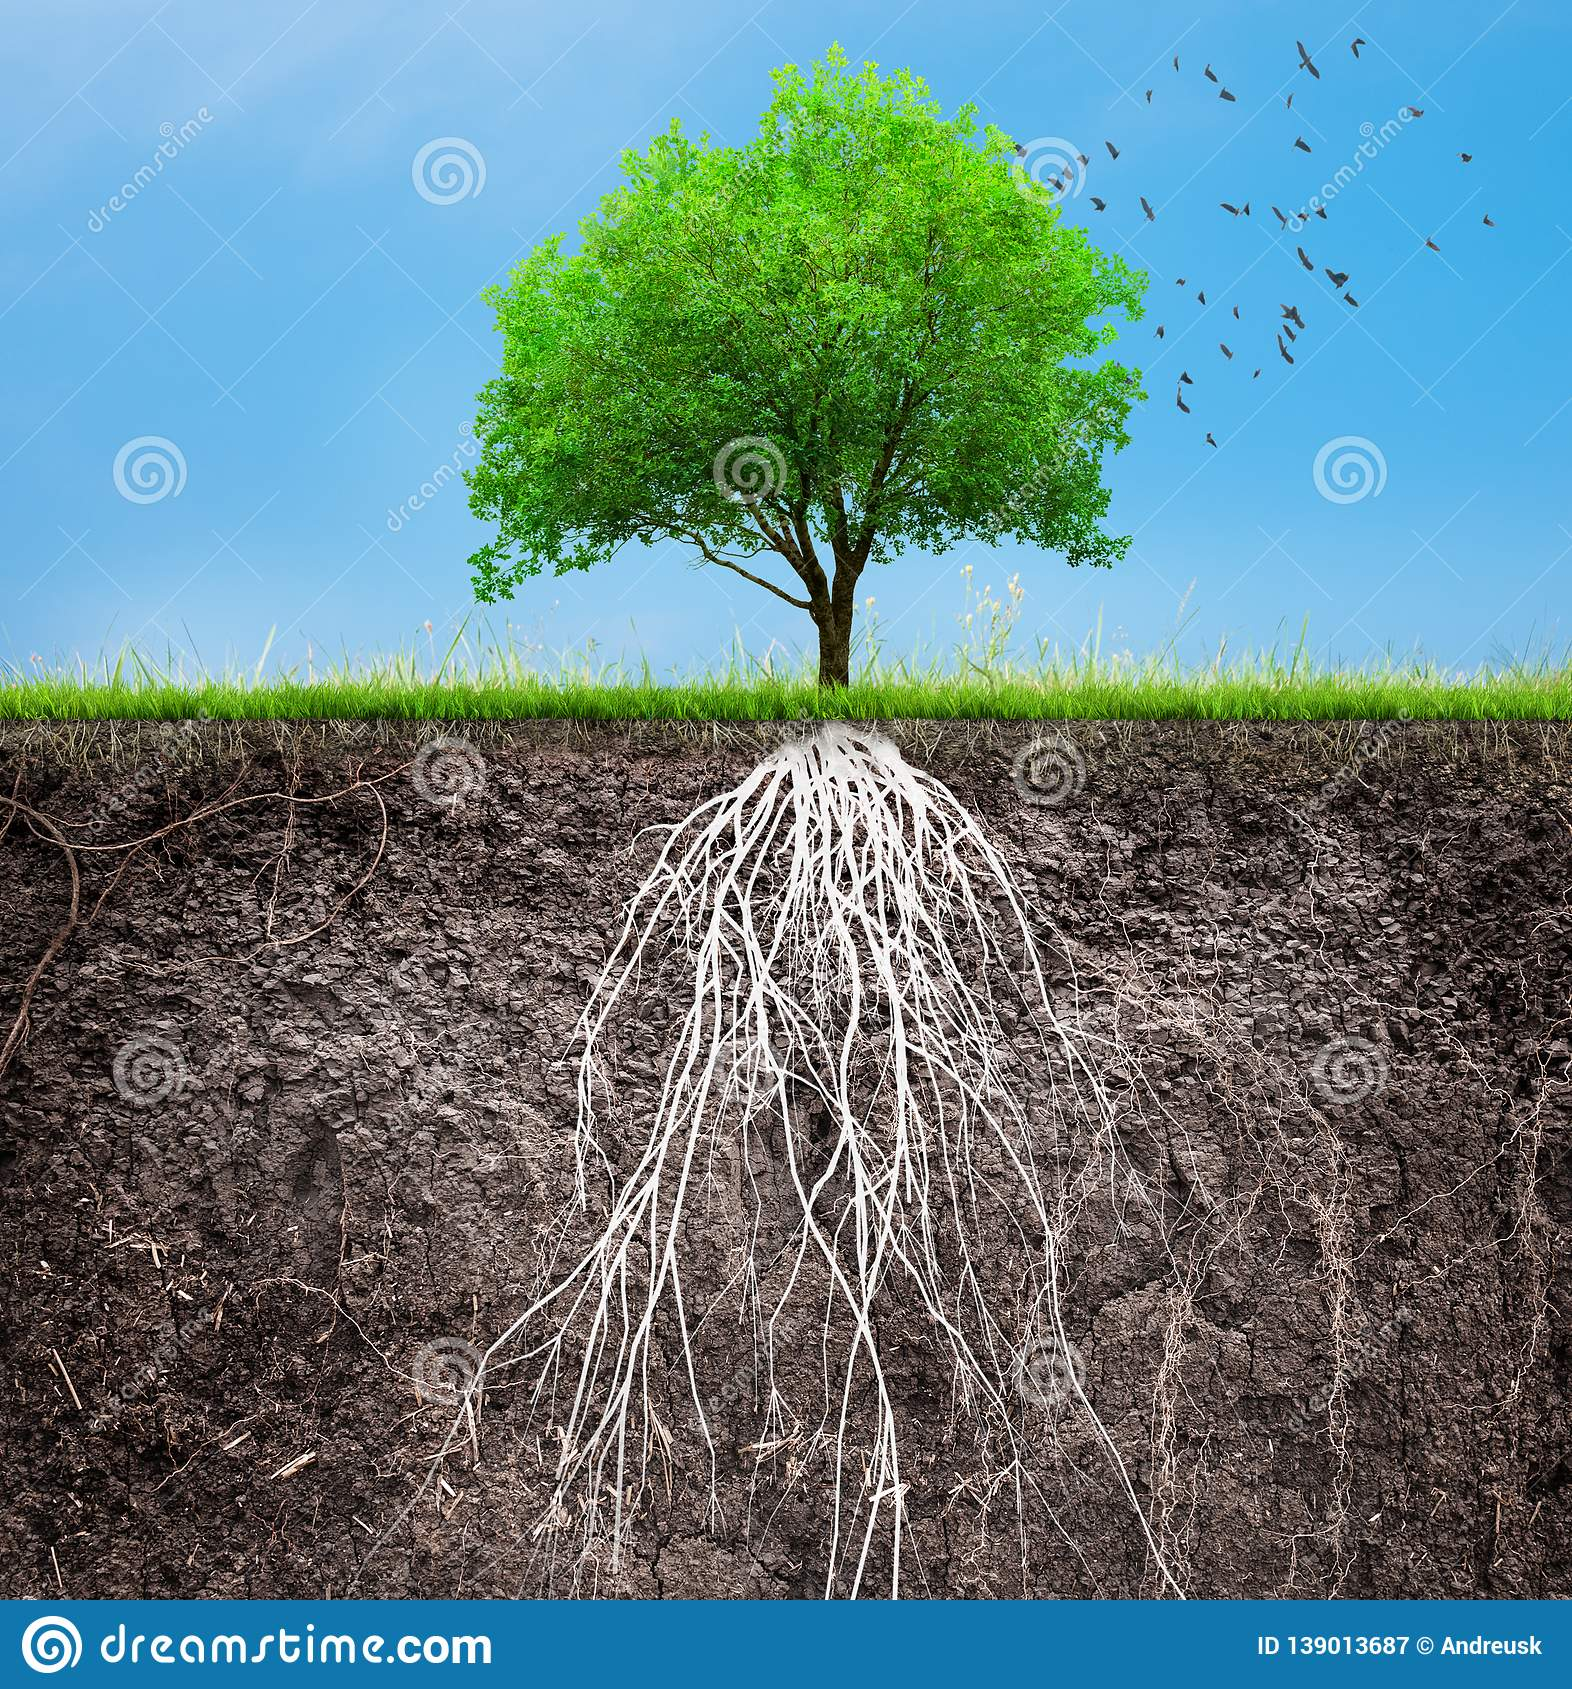 A tree and soil with roots and grass